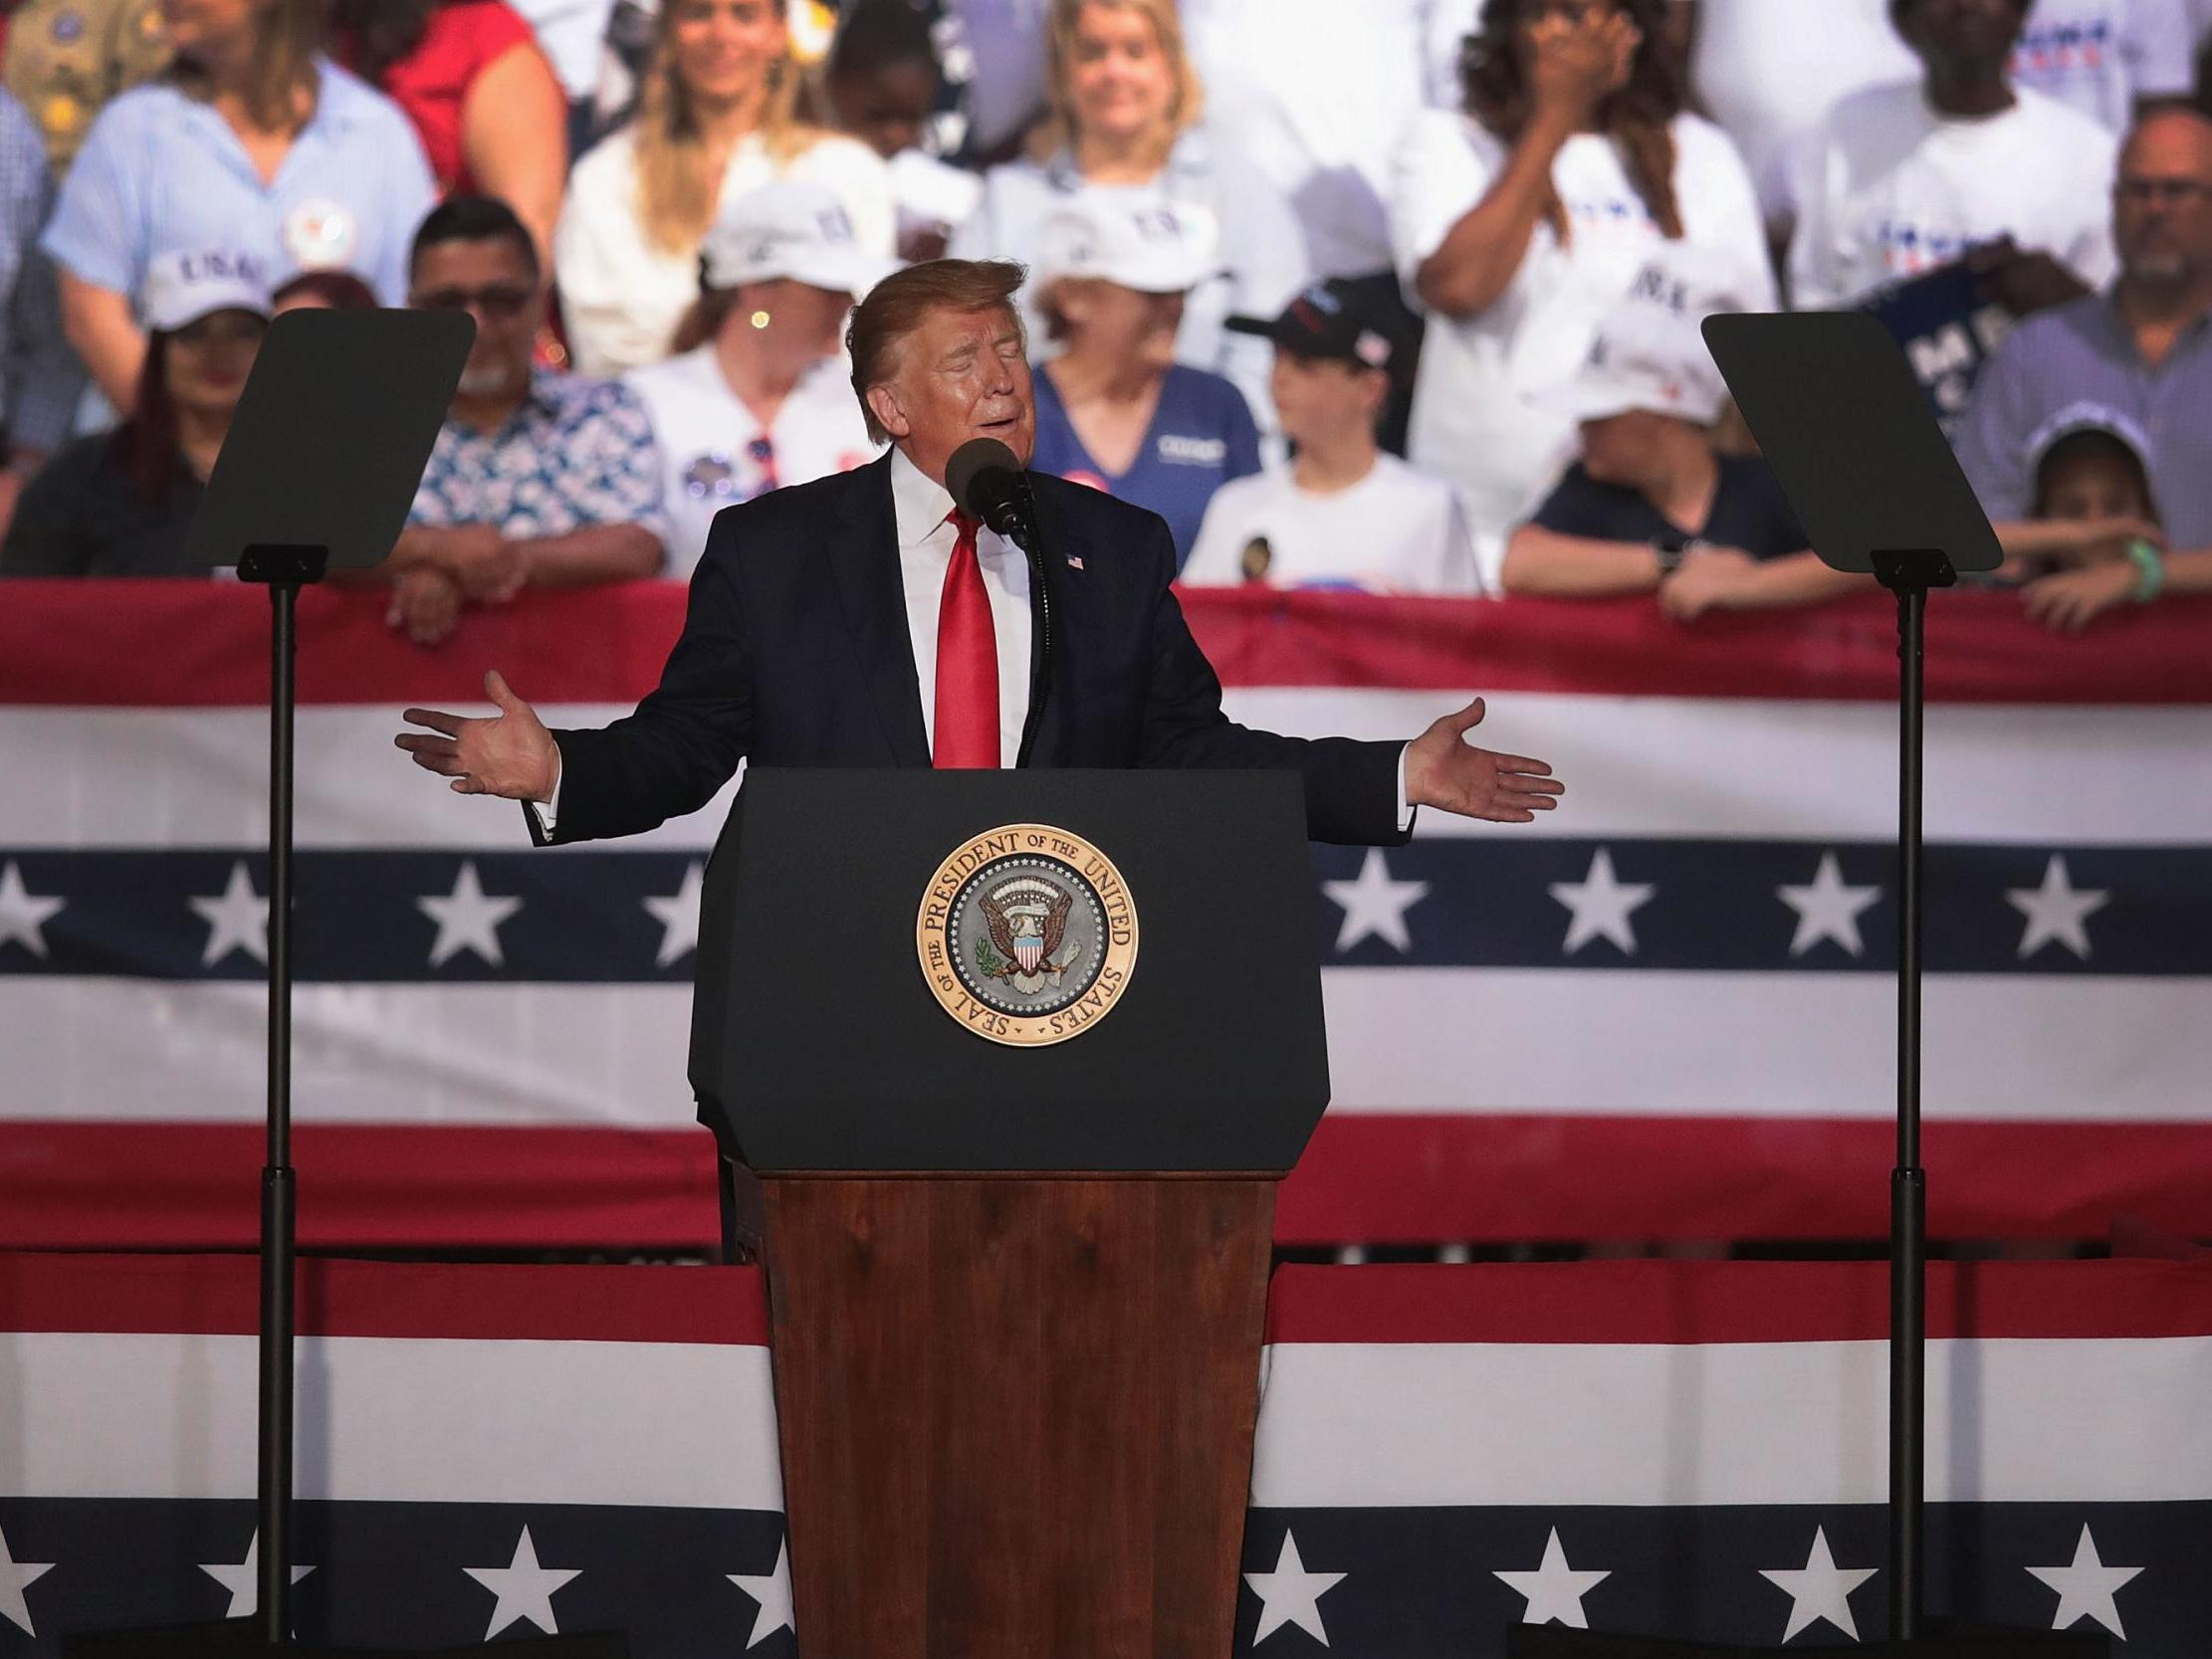 Trump Speeches To Be Broadcast Every Hour On Florida Radio